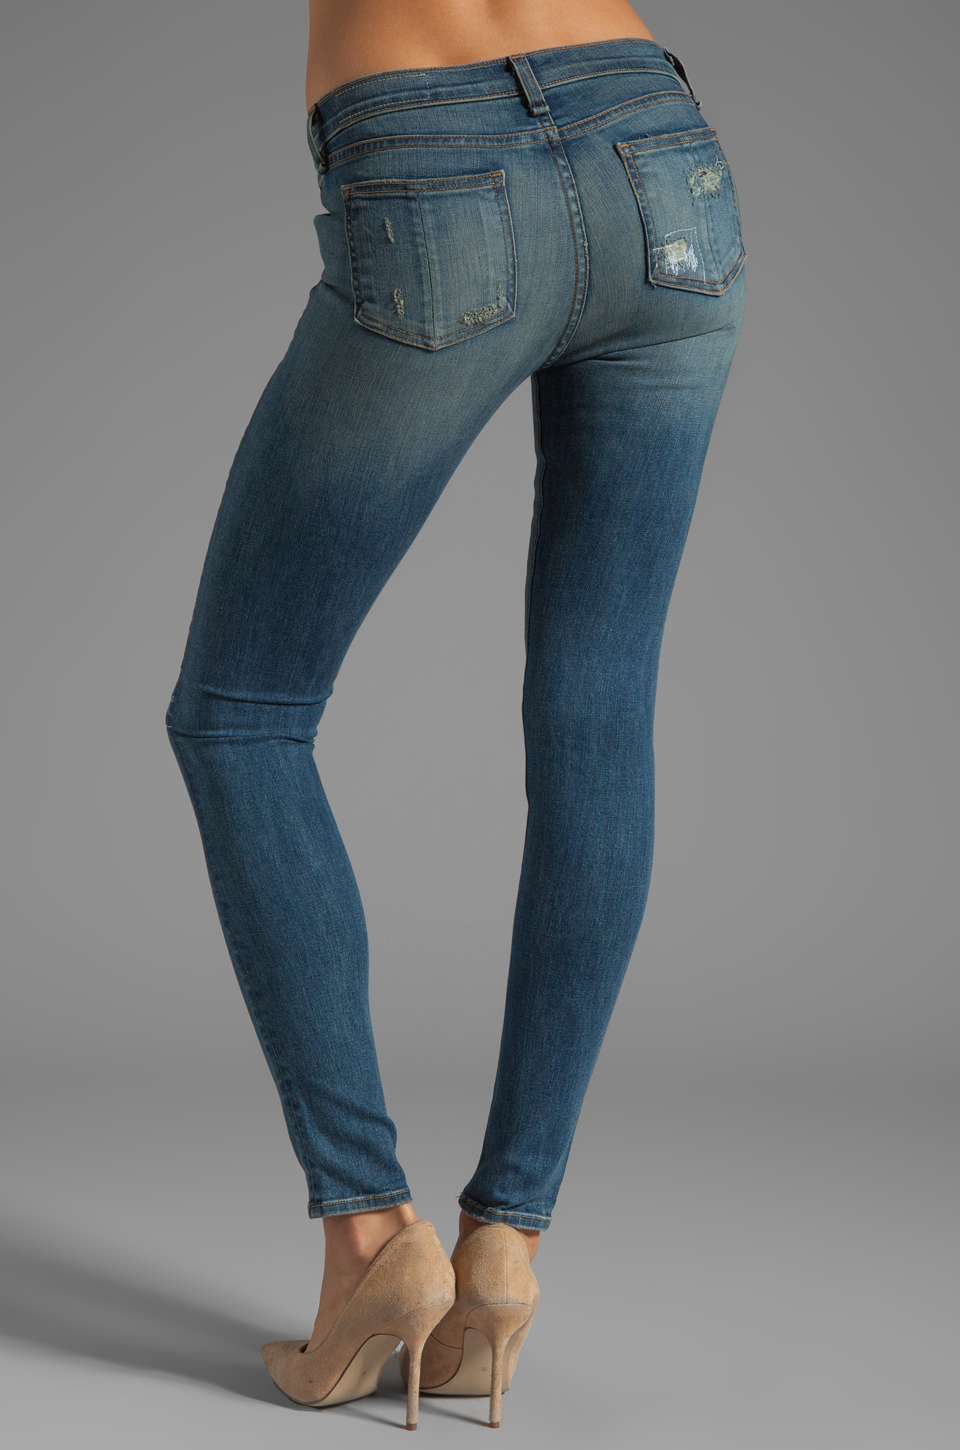 rag & bone/JEAN Skinny in Grayson